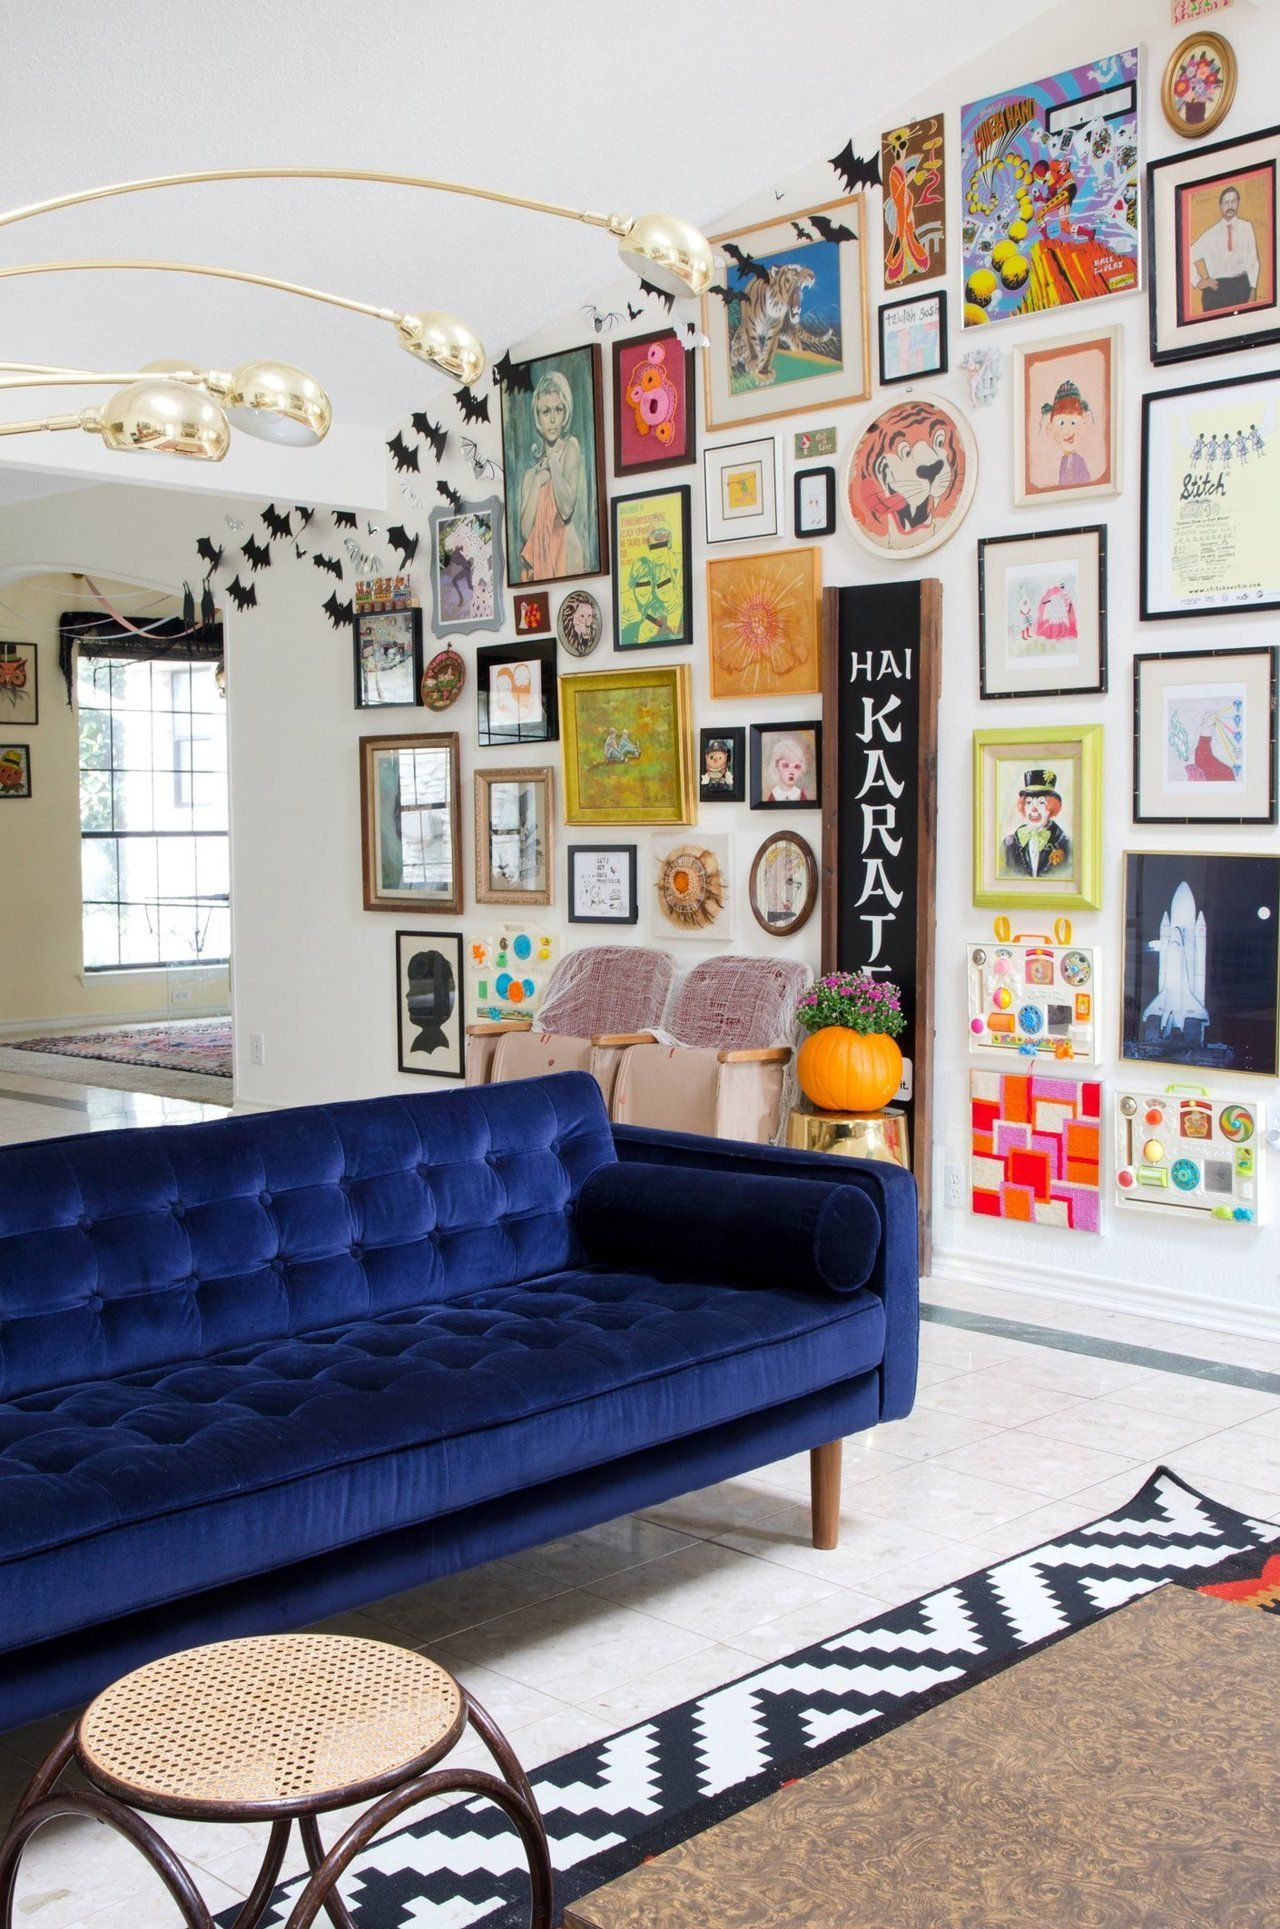 A HalloweenReady Home Bursting With Stealable Decor Ideas is part of home Art Couch - This craft blogger decorates — like REALLY decorates — her home for Halloween using DIY projects, unconventional objects, and vintage finds  All ideas worth stealing!